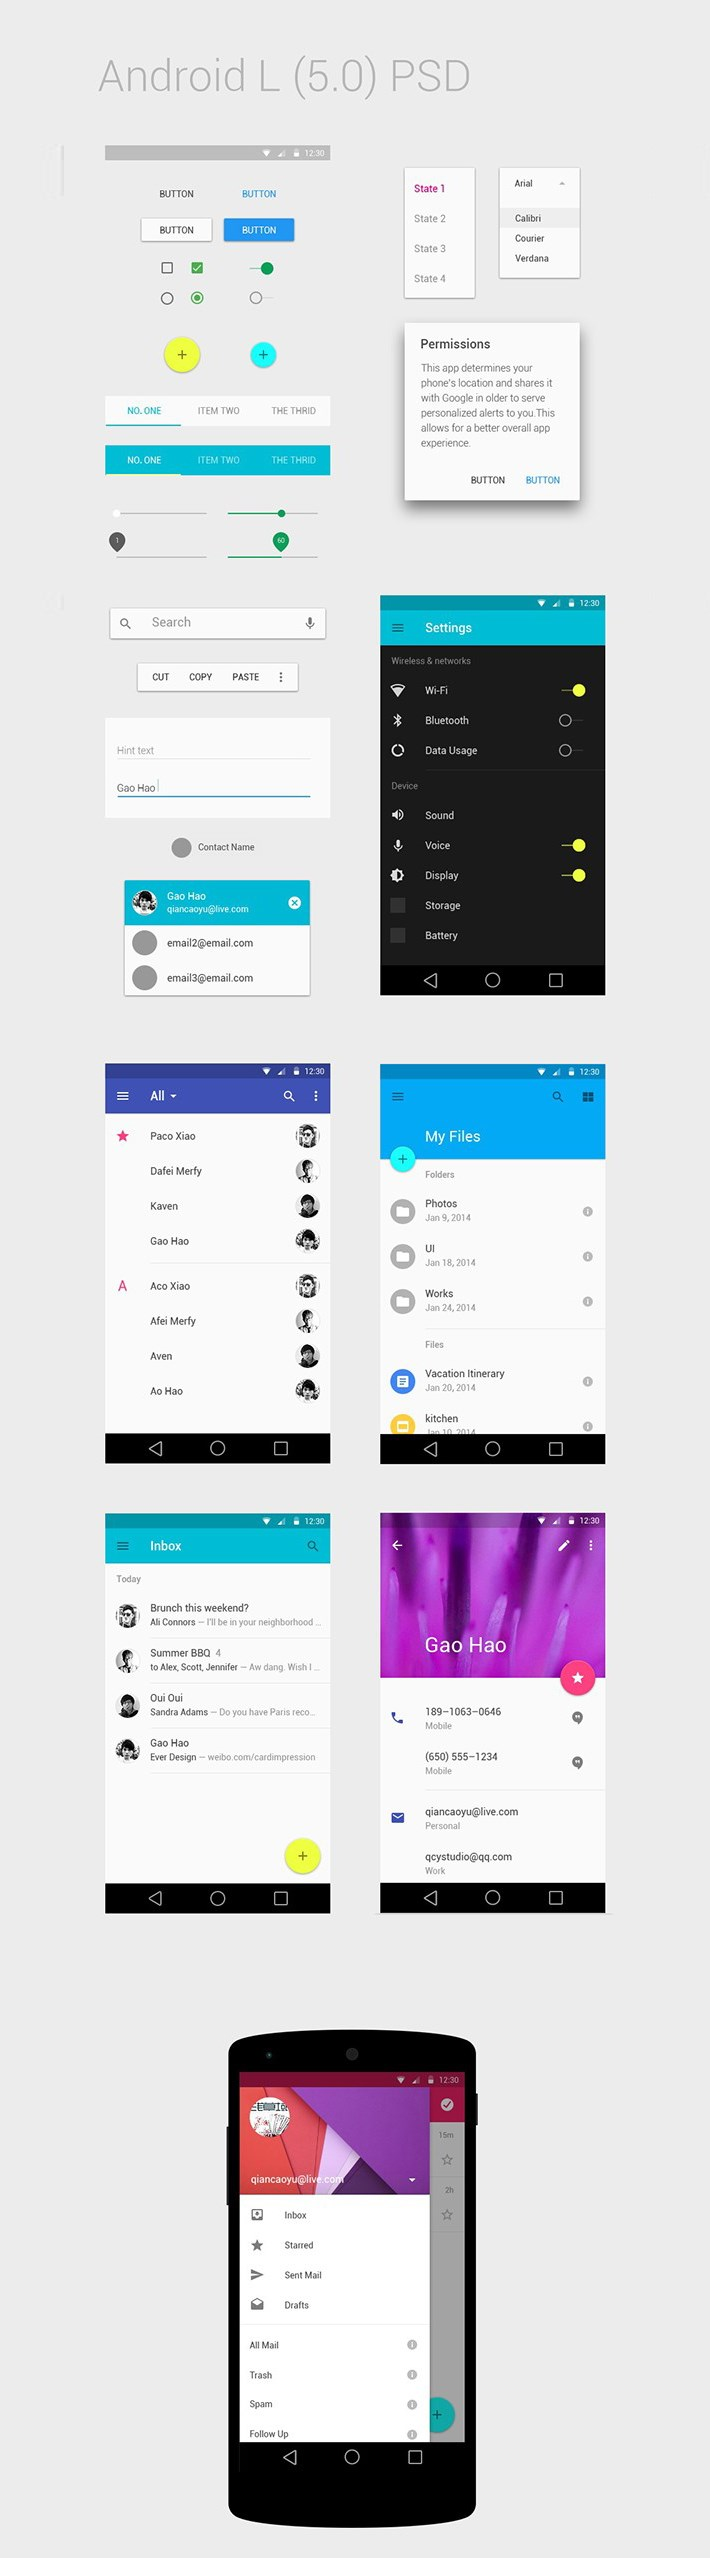 10_GUI_Templates_for_Android_11.jpg (710×2558)